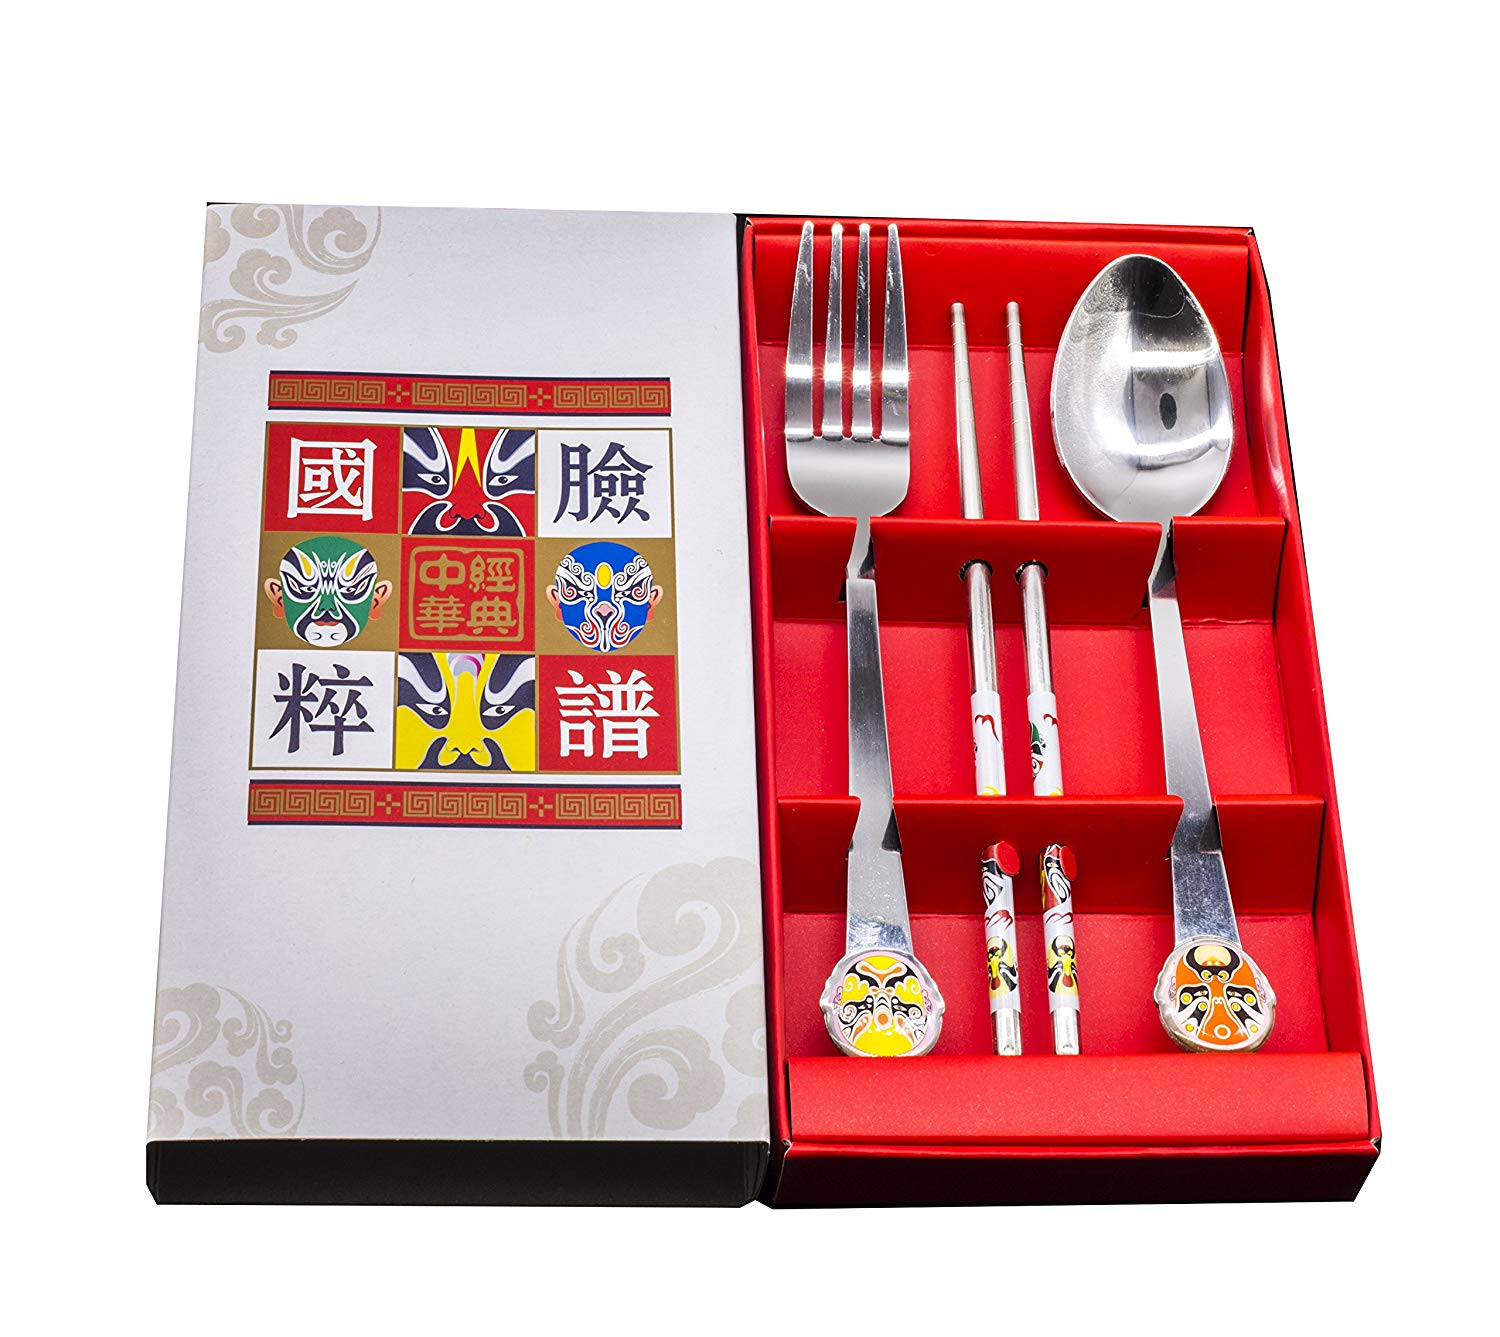 Genubi-3PCS Chinese Oriental Style Peking Opera Portable Flatware Fork Spoon Chopsticks Tableware Set 410 Stainless Steel Dinnerware Silver